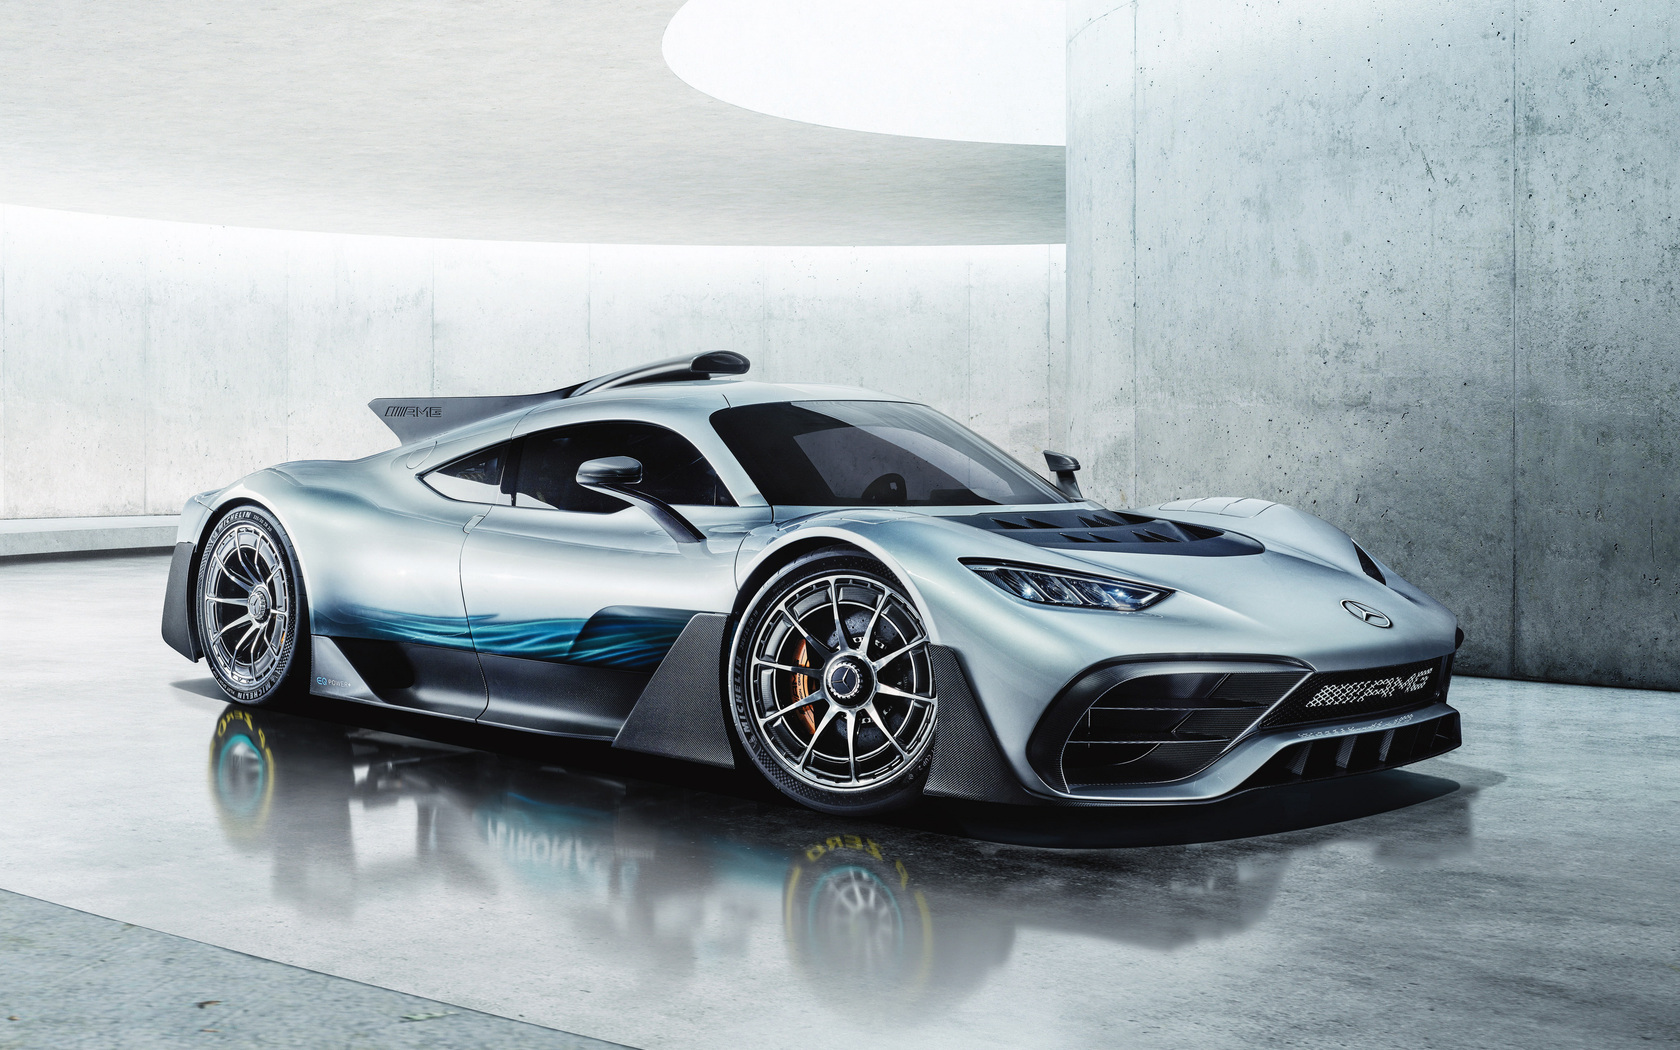 1680x1050 Mercedes Amg Project One 2018 1680x1050 Resolution Hd 4k